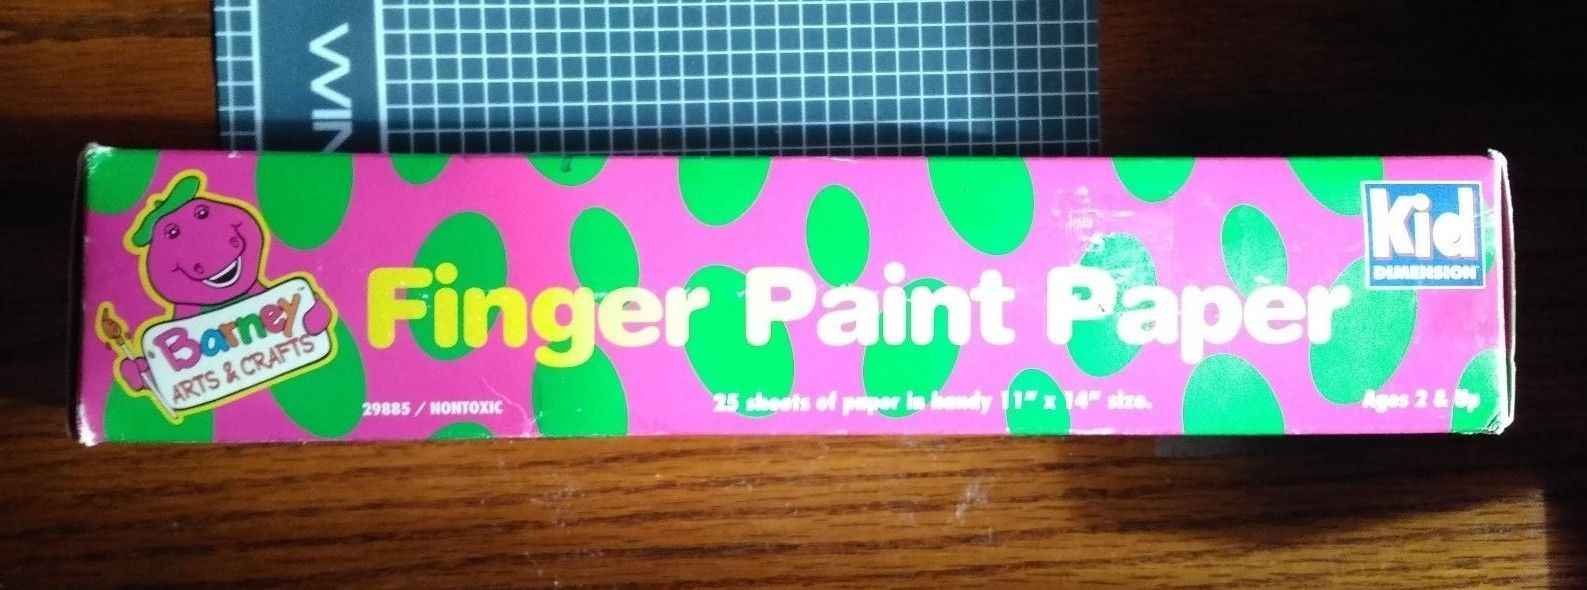 "Barney Finger Paint Paper NIP  25 Sheet; each is 11"" x 17""  Barney Arts & Crafts"